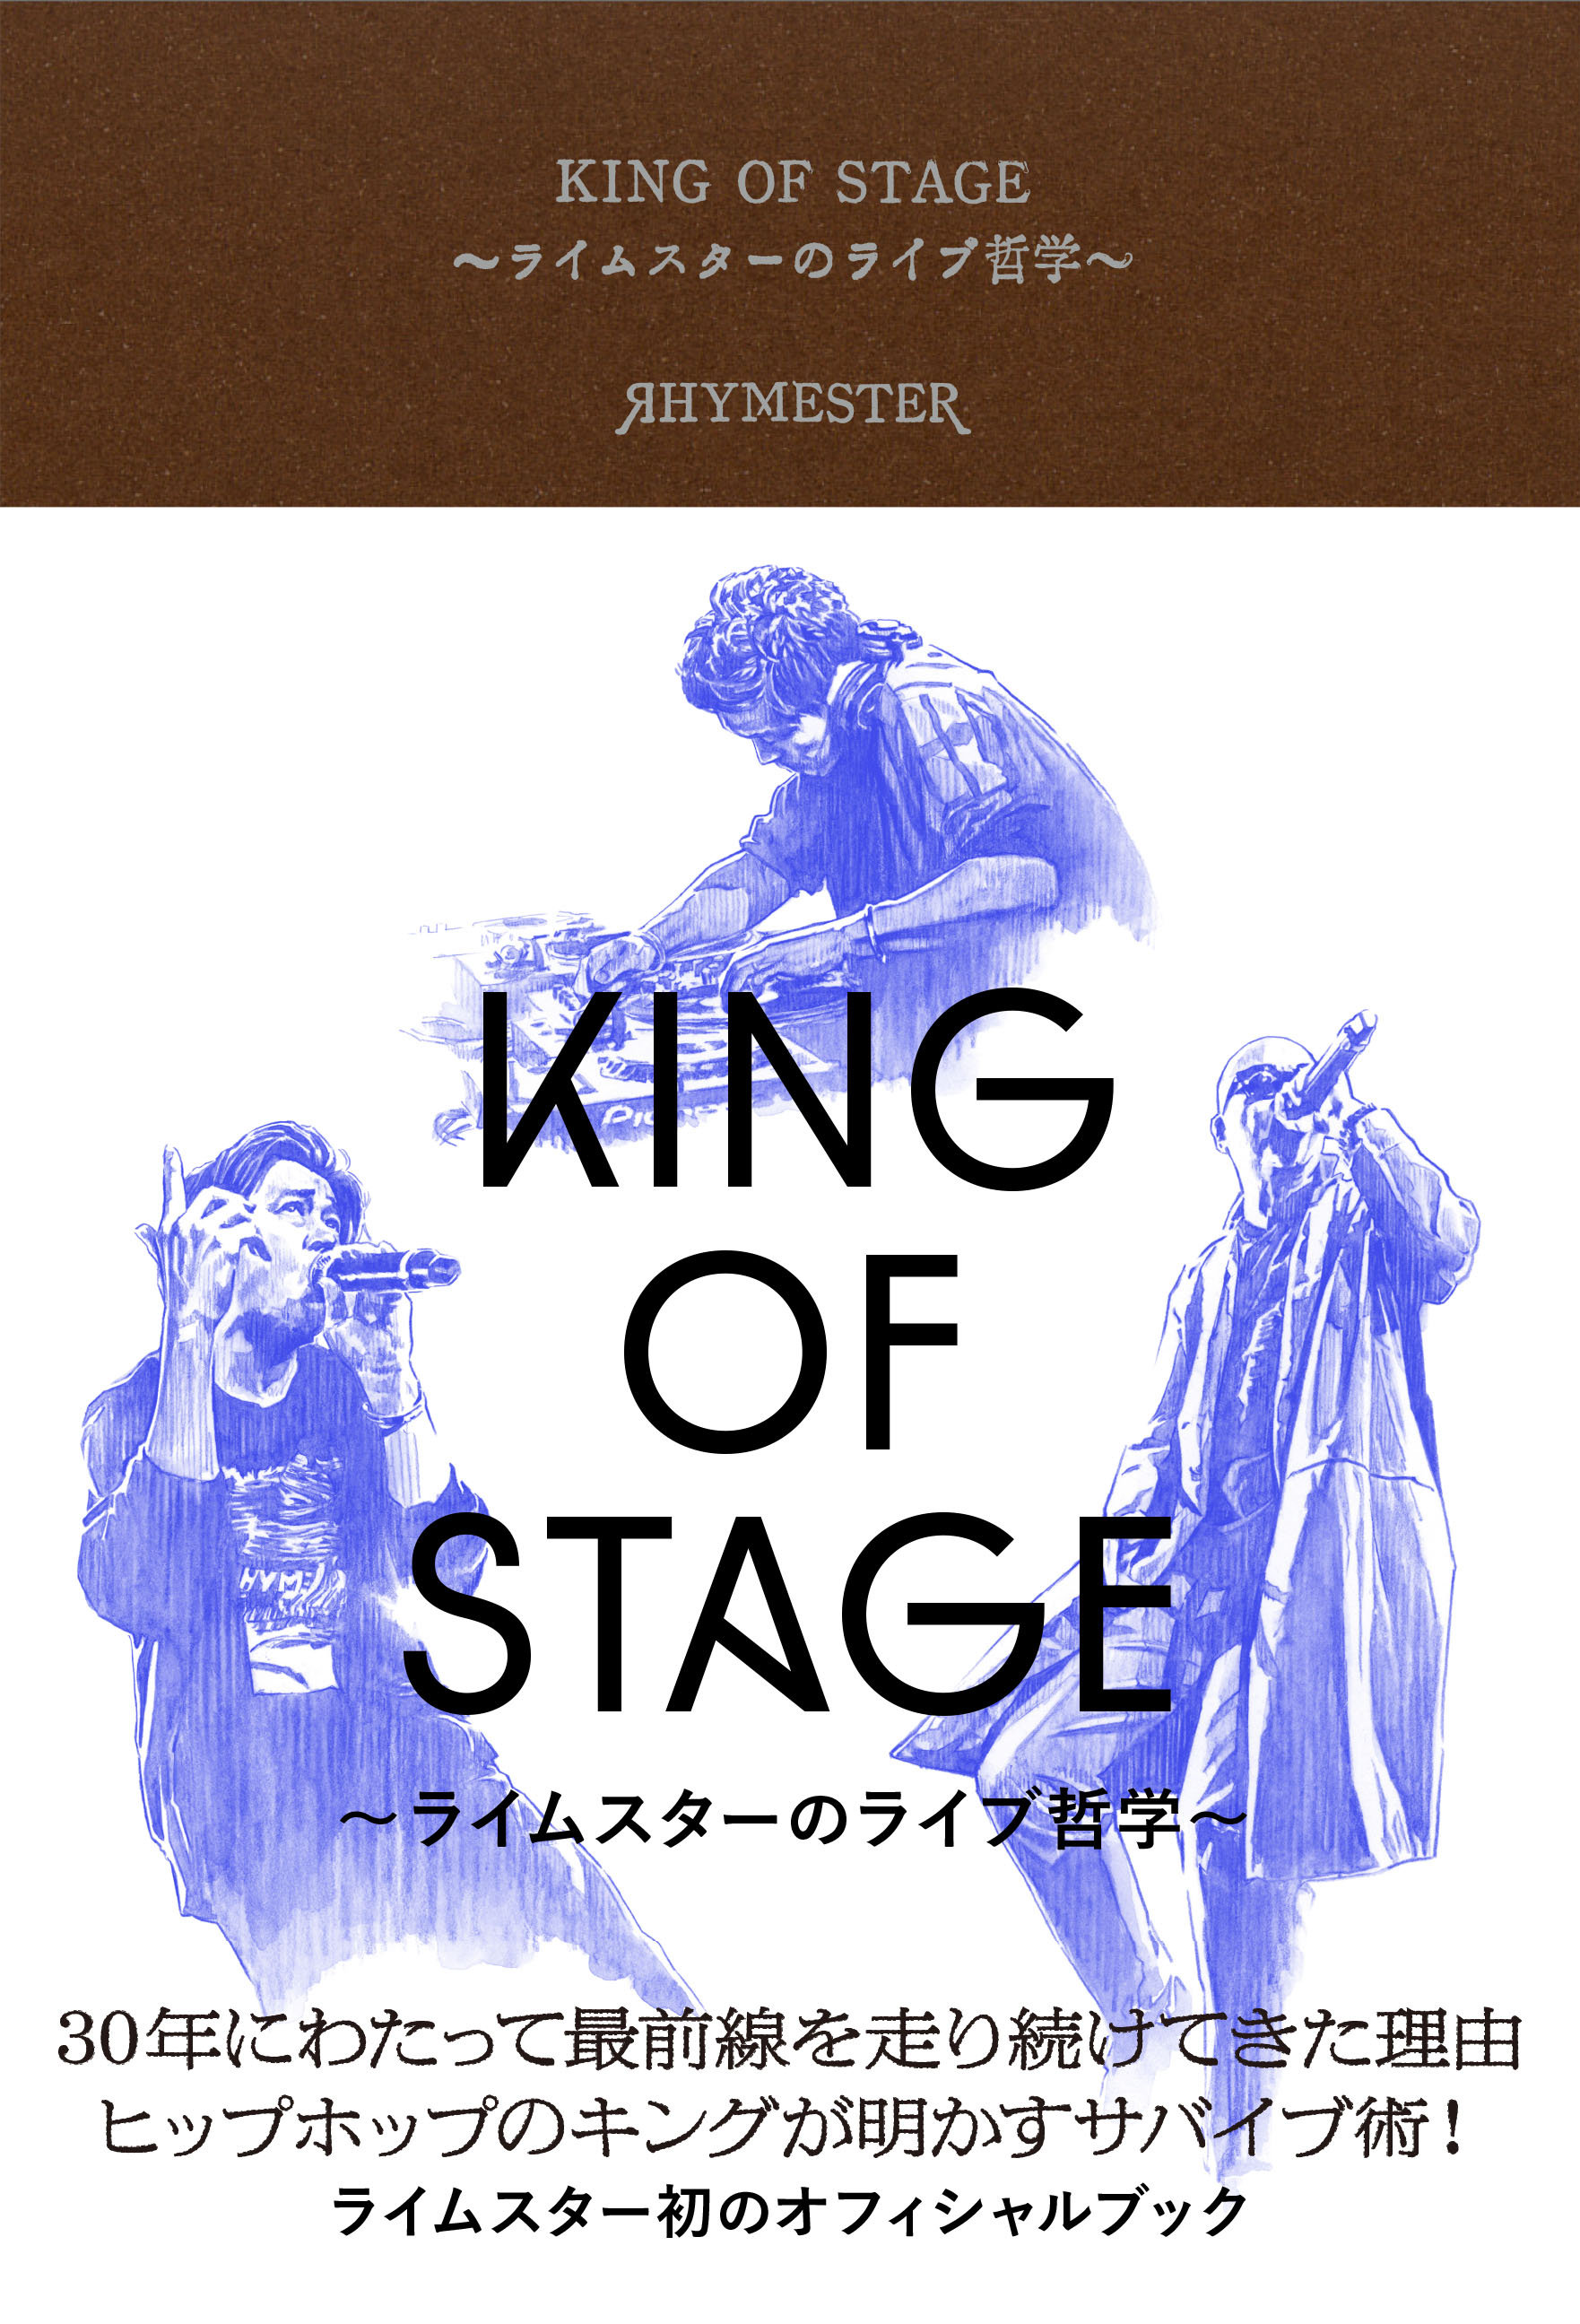 KING OF STAGE ~ライムスターのライブ哲学~